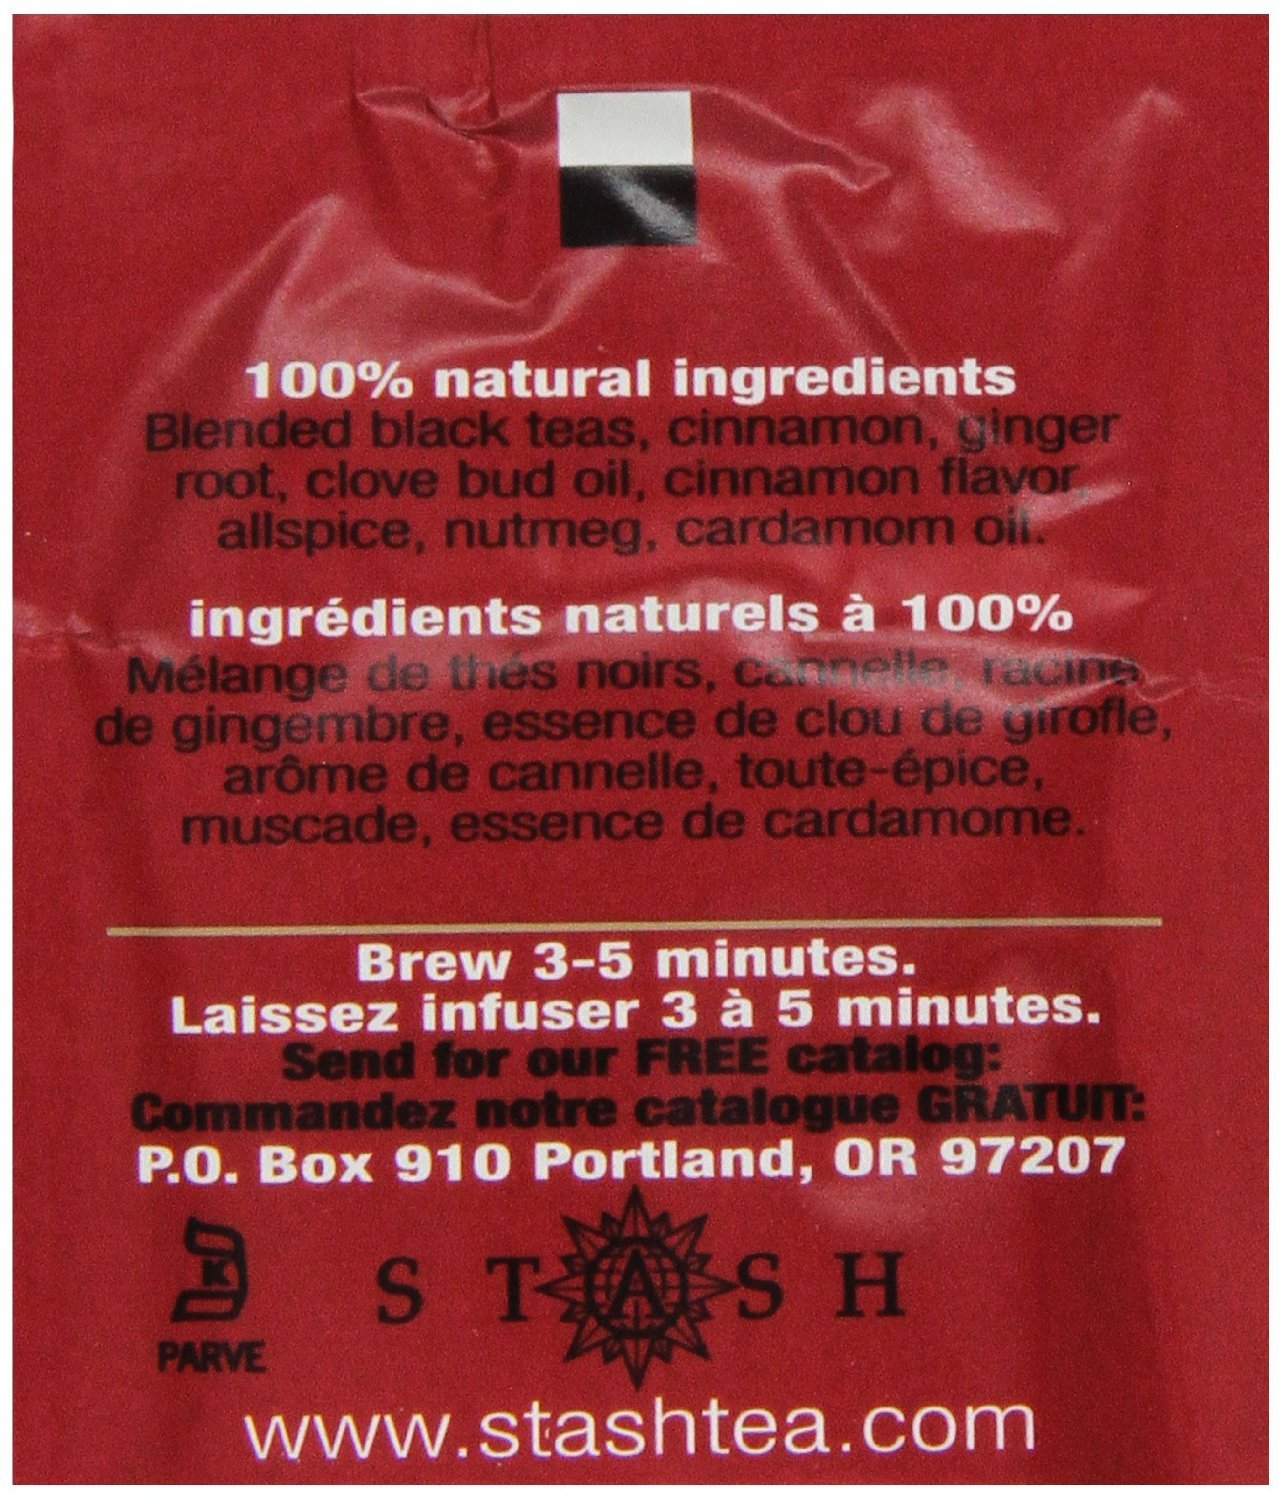 Stash Tea Double Spice Chai Black Tea, 10 Count Tea Bags in Foil (Pack of 12), (packaging may vary) by Stash Tea (Image #5)